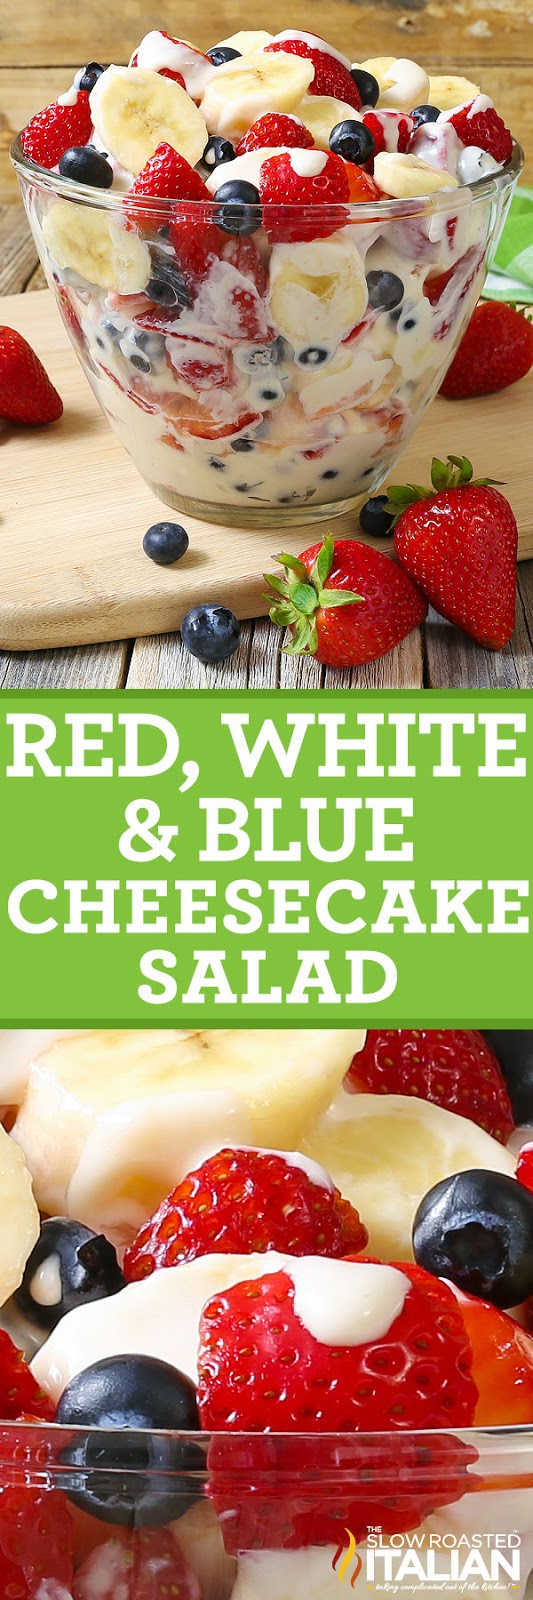 recipe: cheesecake salad delight [17]